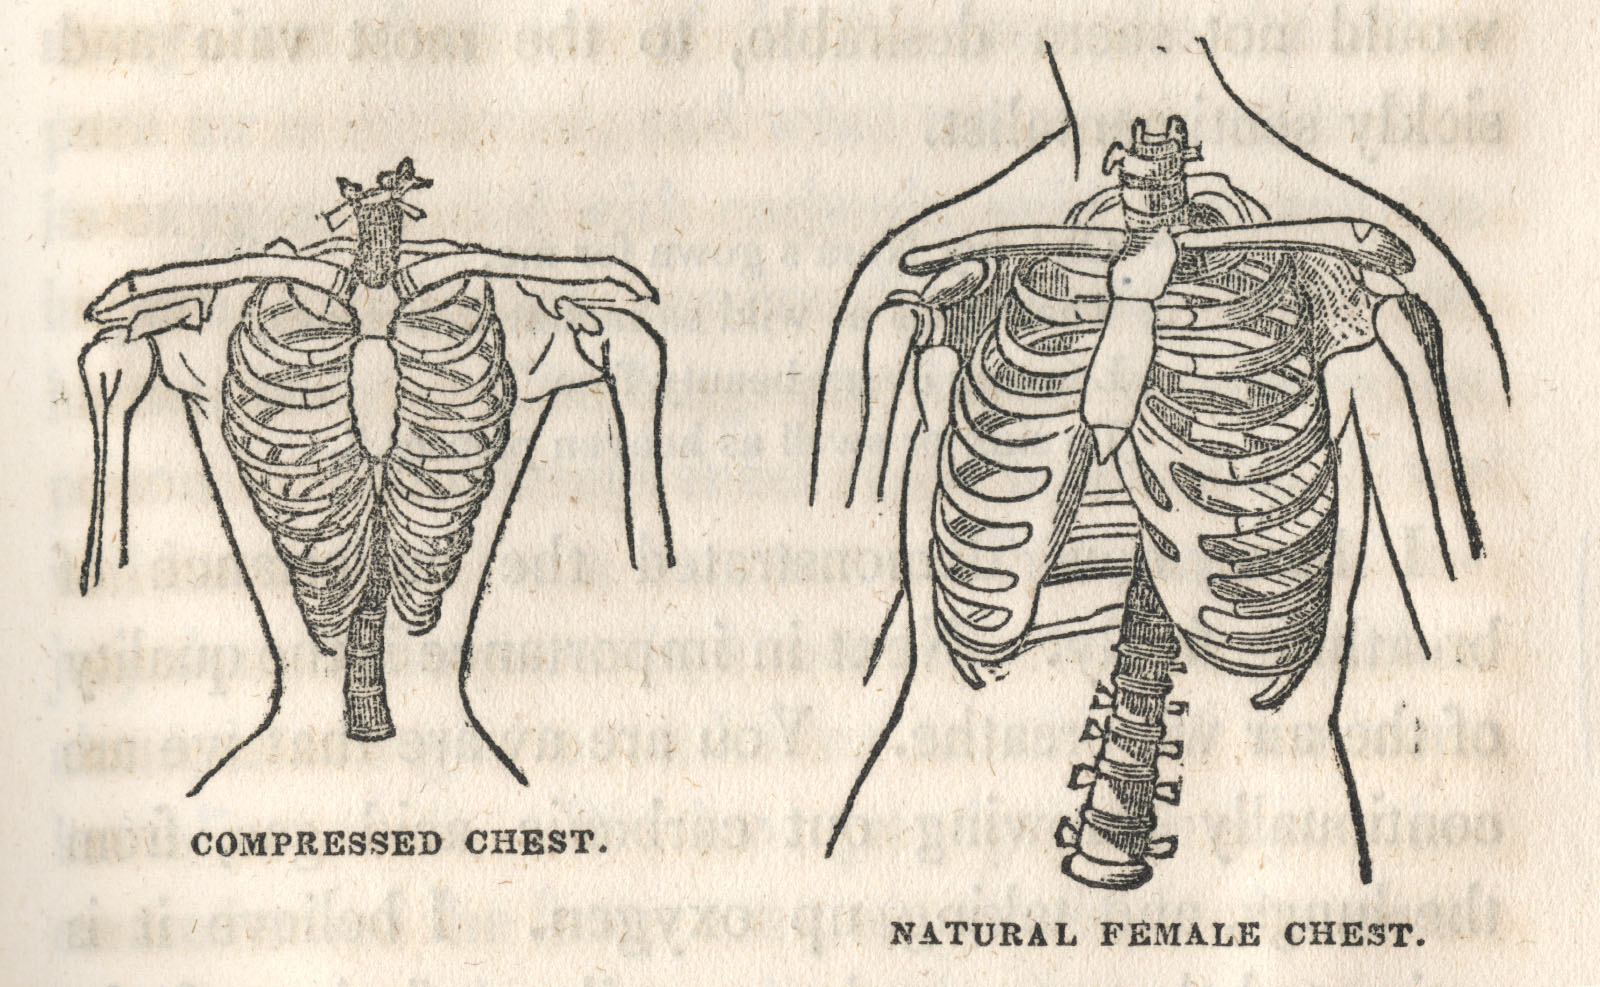 Illustration in Mary Gove Nichols's Lectures to Ladies on Anatomy and Physiology (Boston, 1842).